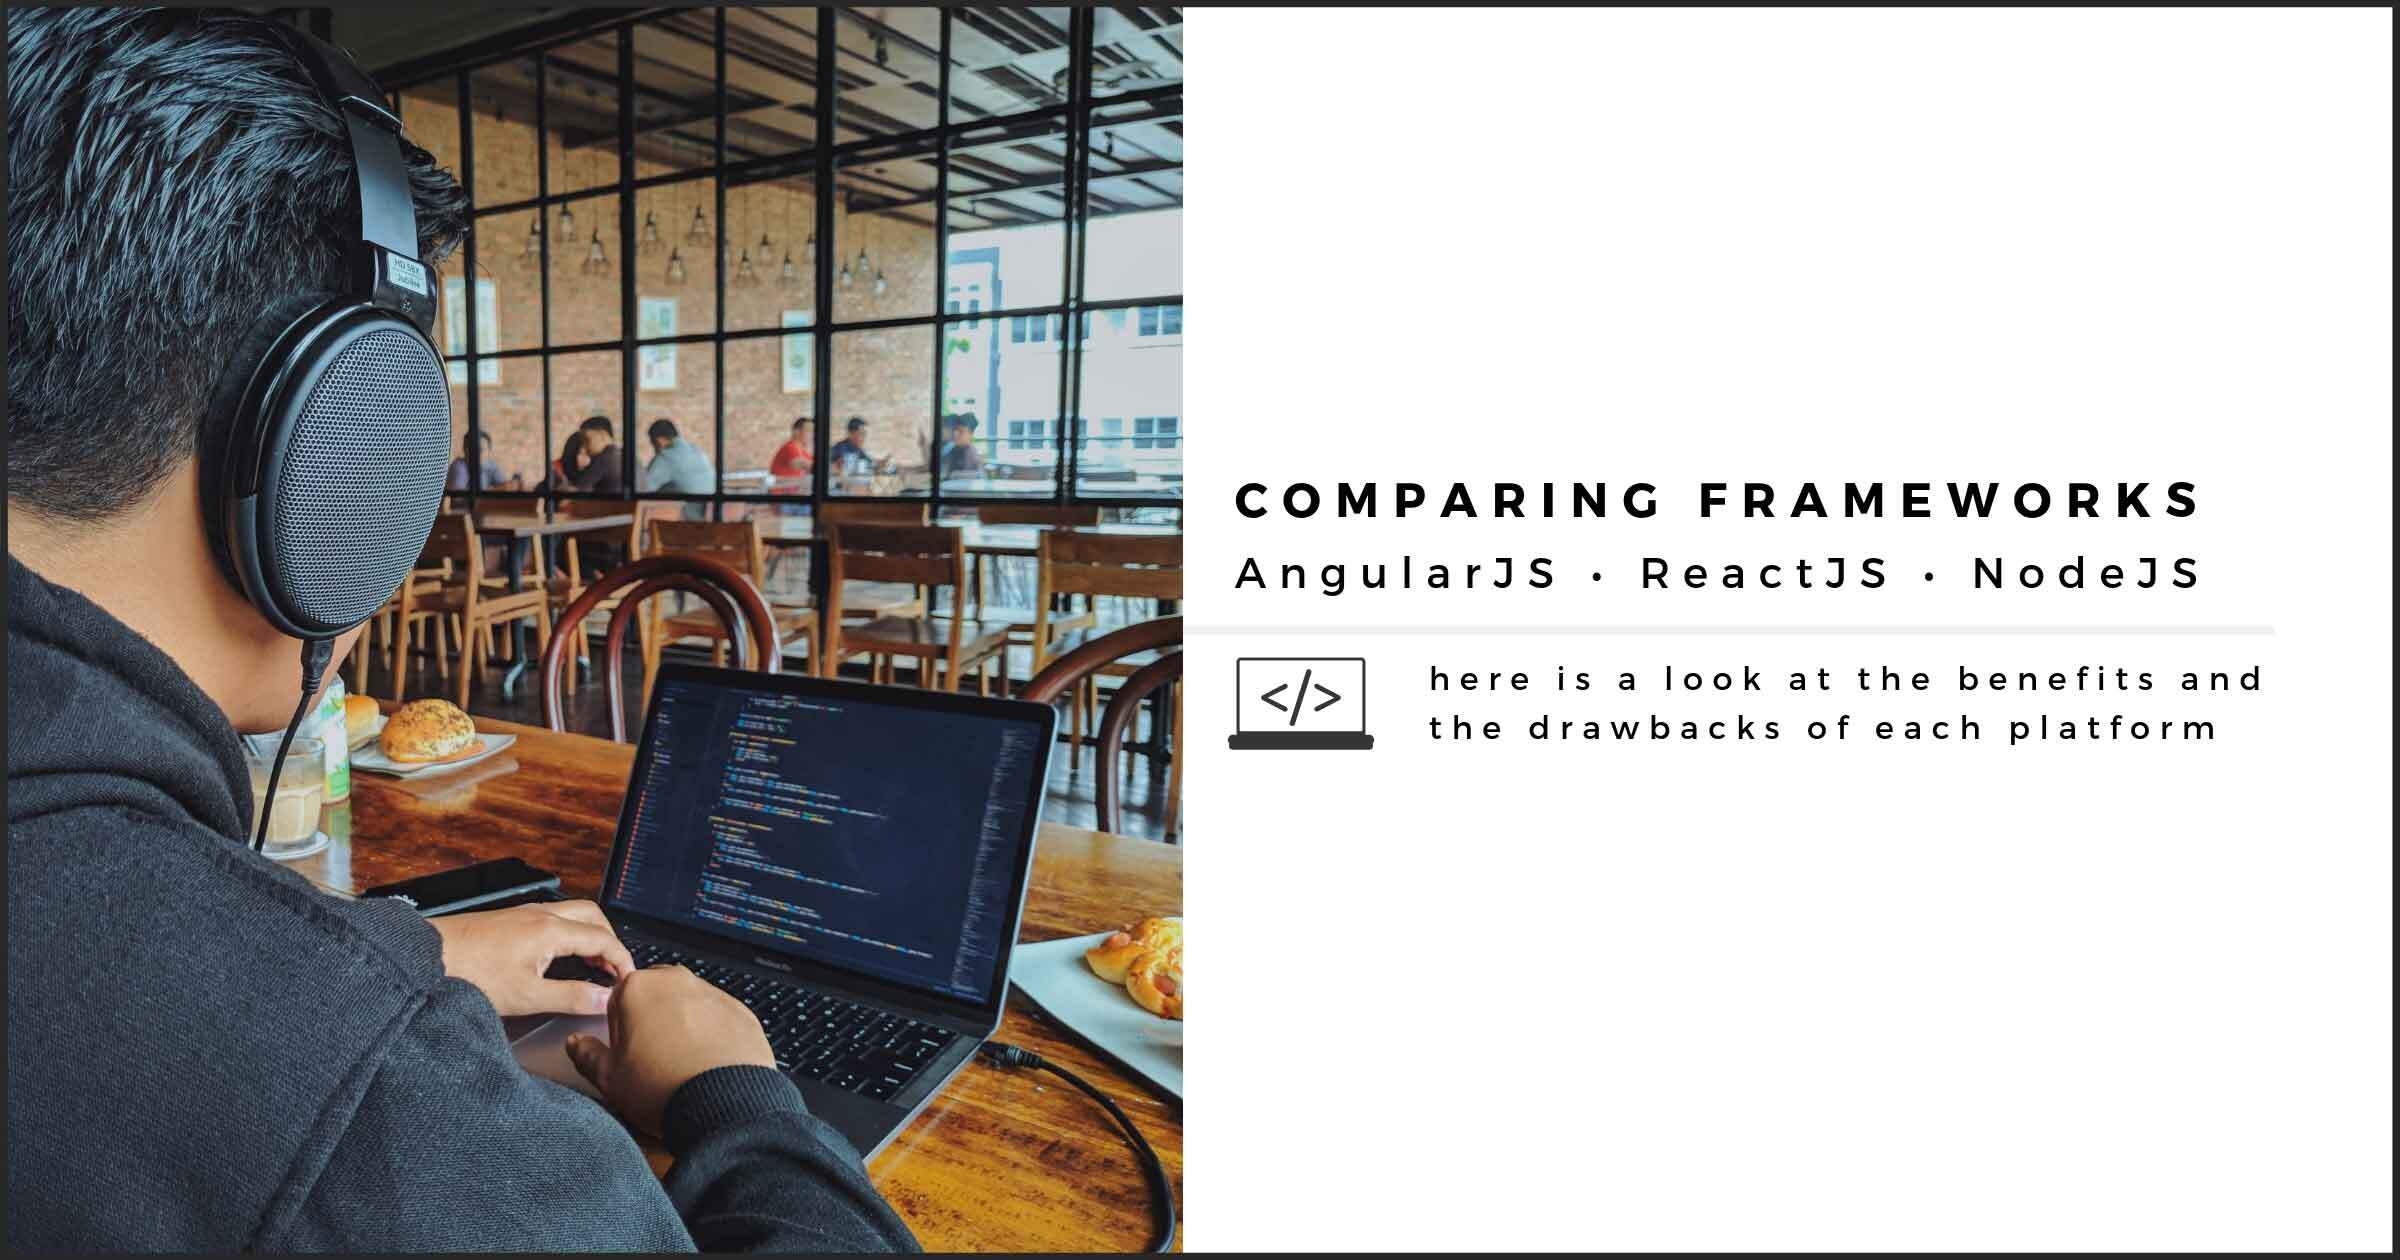 AngularJS, ReactJS, NodeJS: Comparing Frameworks